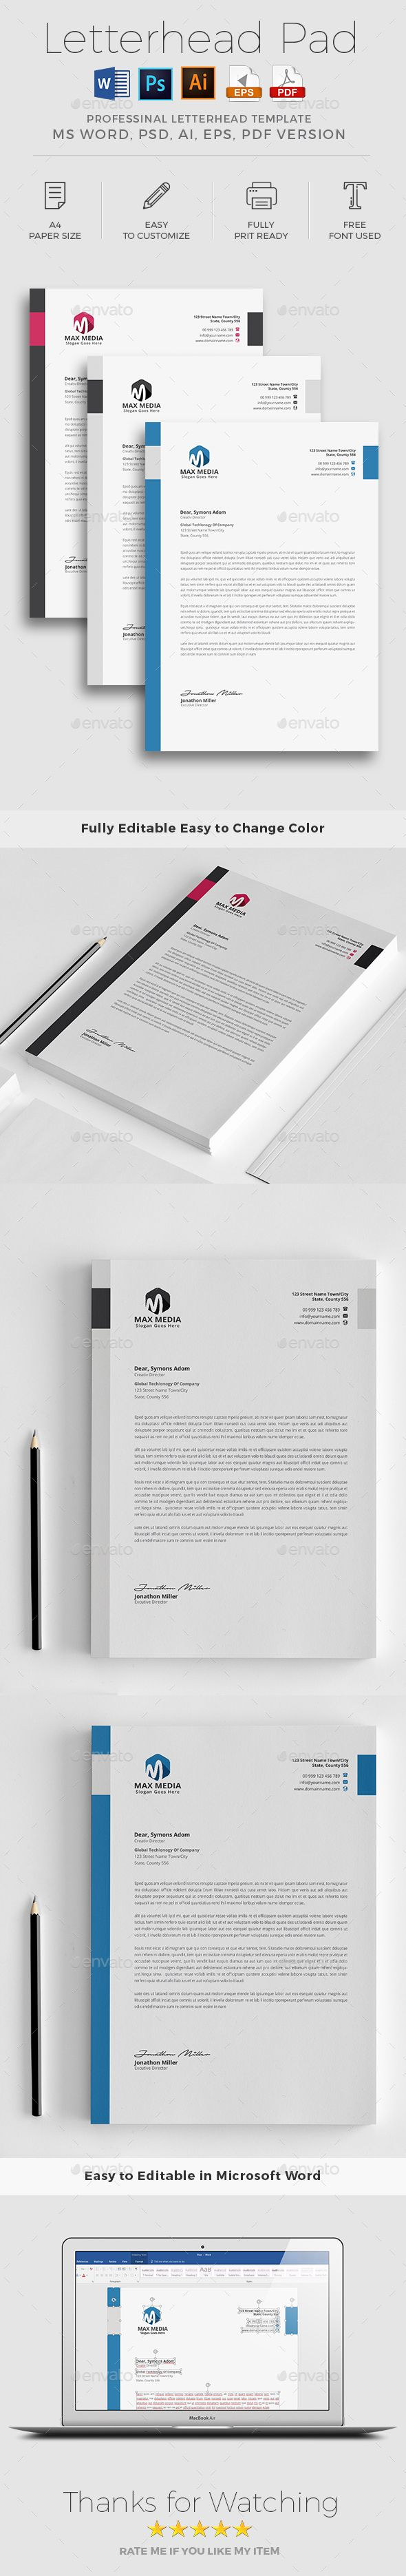 microsoft word business letterhead template